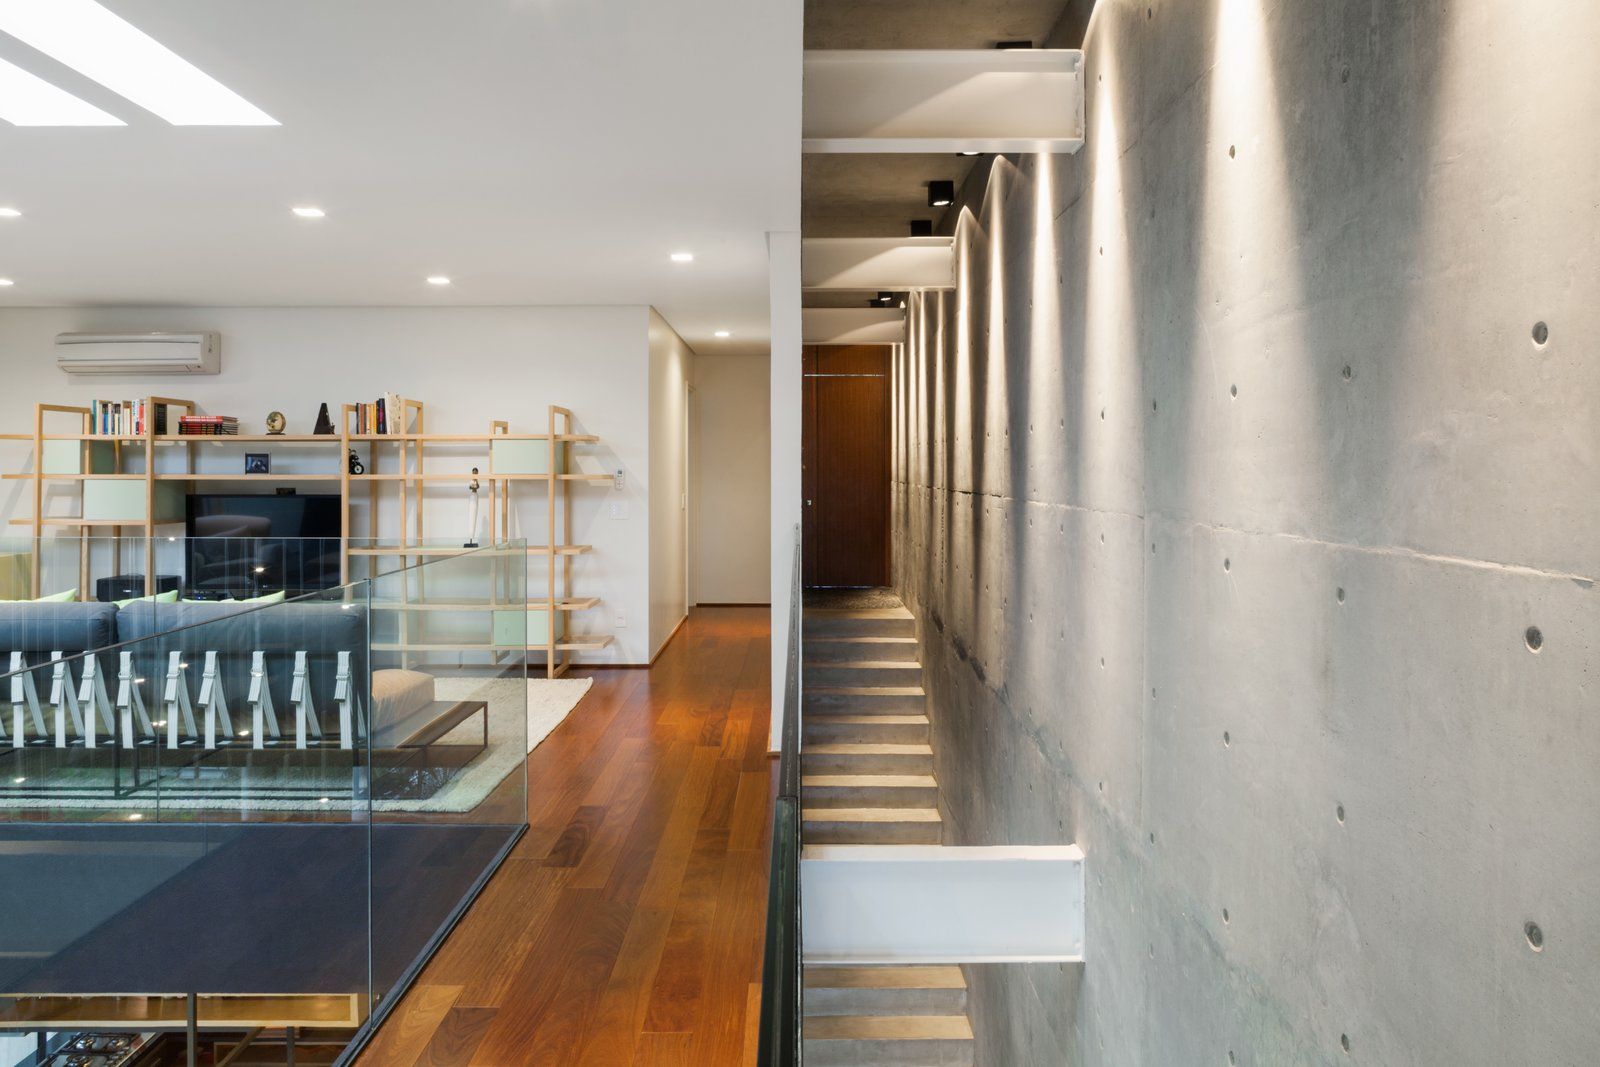 Mattos House by FGMF Archtects